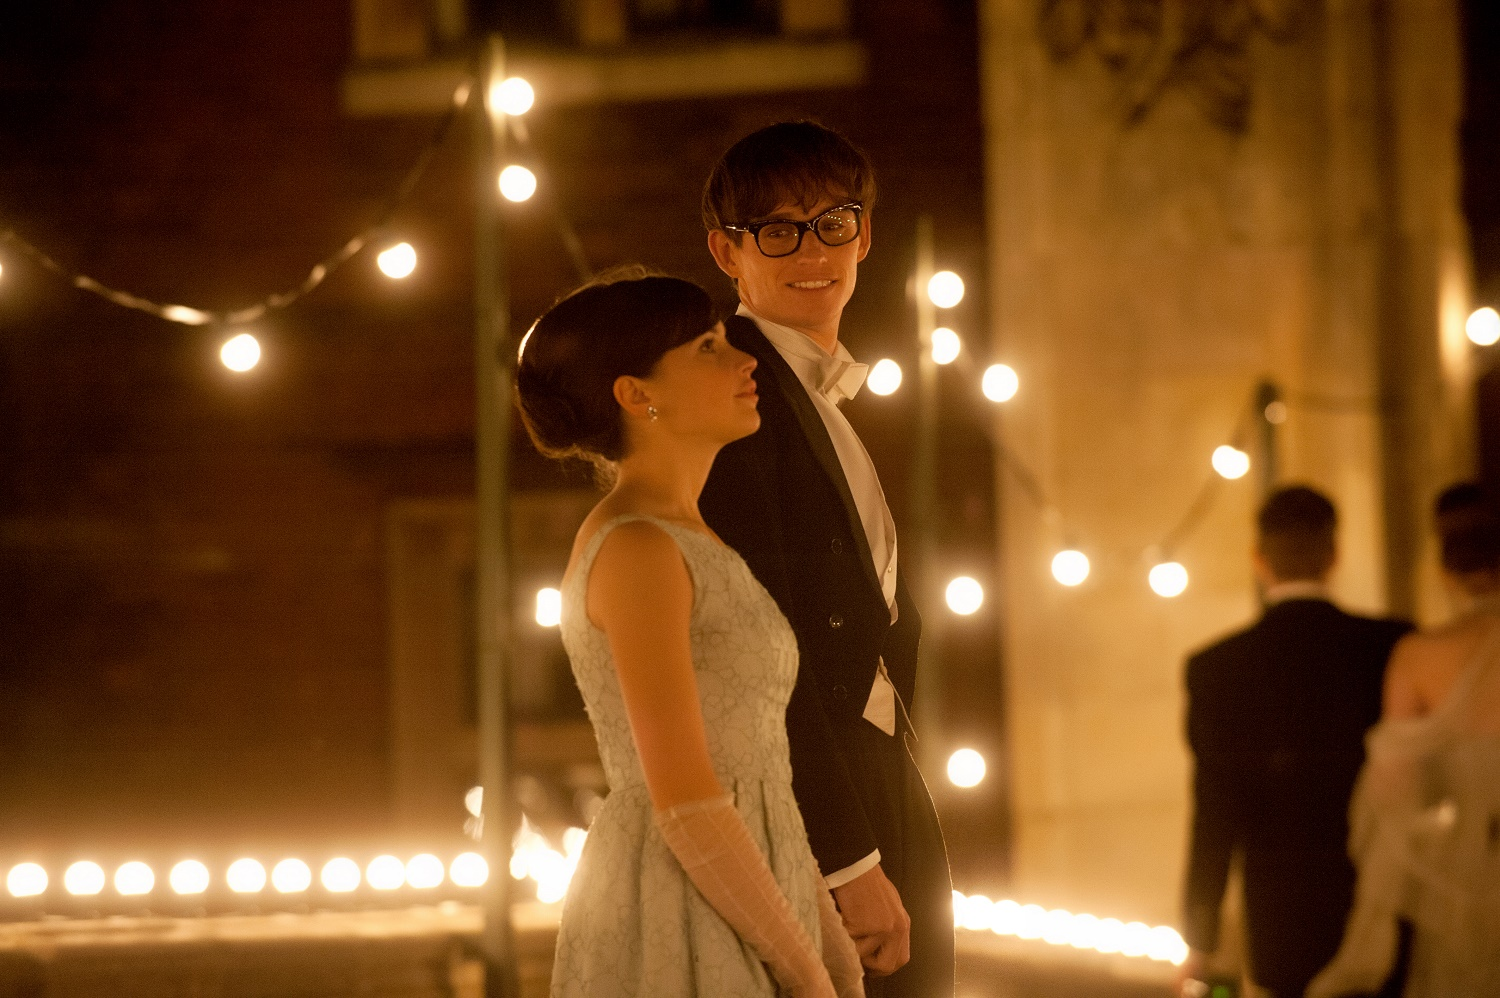 Review หนัง: Review : The Theory of Everything (2014) ทฤษฎีรักนิรันดร